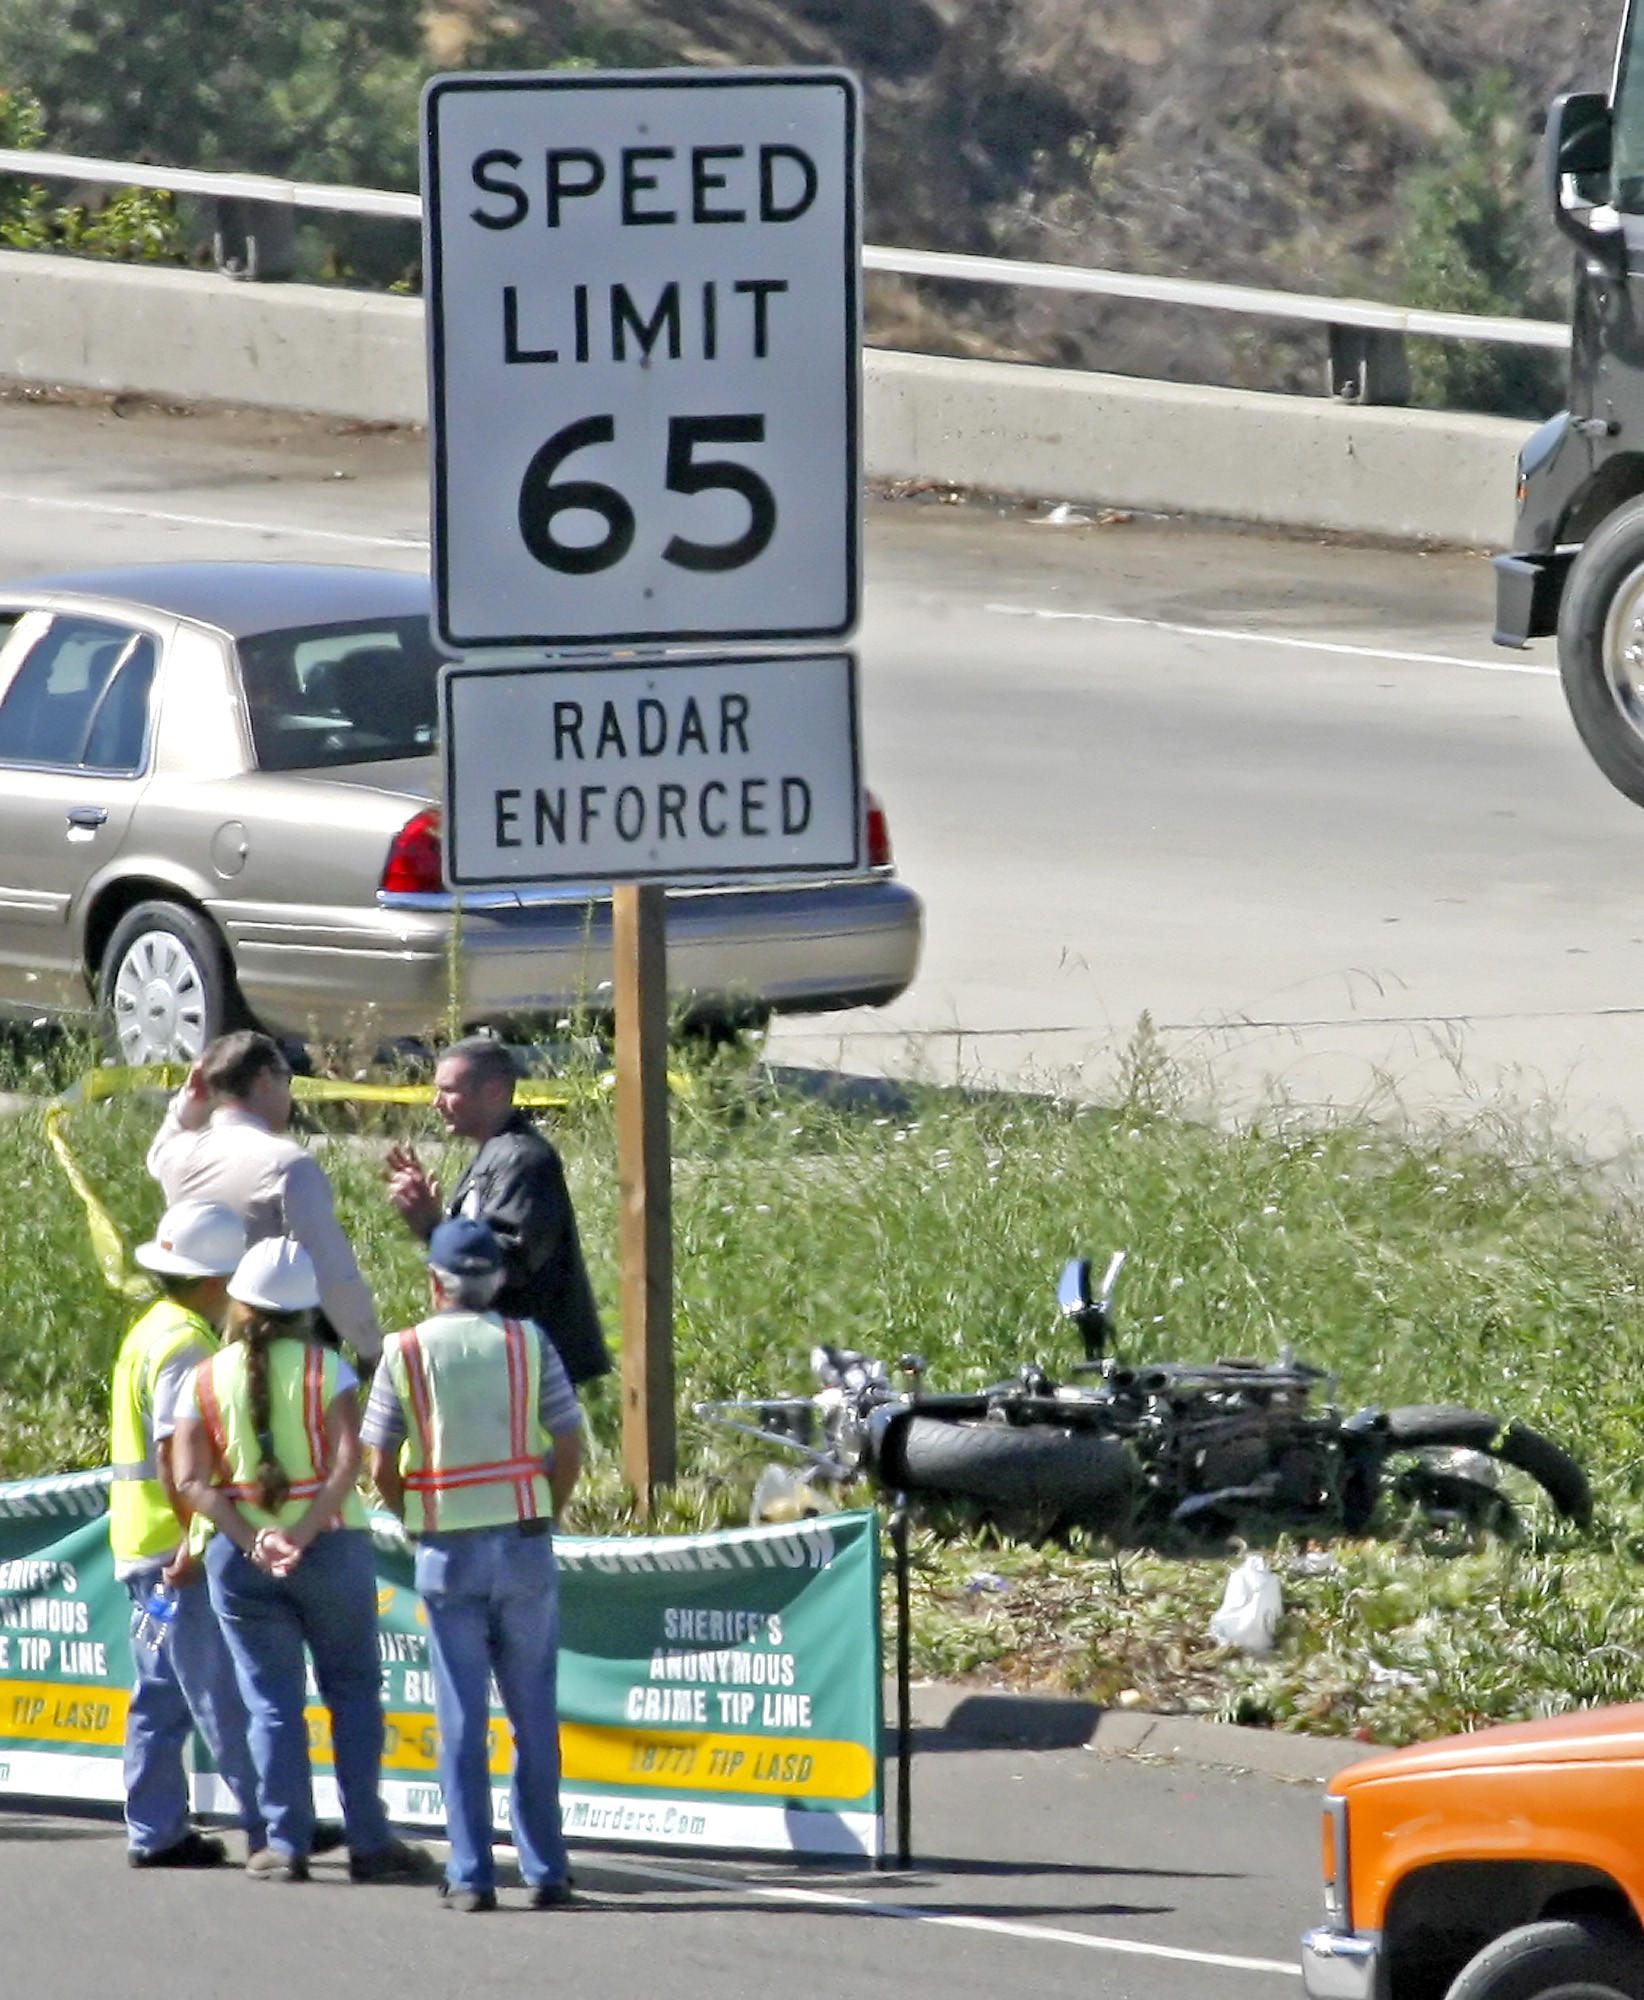 Emergency personnel talk near the wrecked motorcycle of man who was shot and killed early Wednesday morning, October 8, 2008. A reputed gang member accused of killing a Mongols Motorcycle Club member on the Glendale (2) Freeway in 2008 was sentenced on Wednesday, April 16, 2014, to life without the possibility of parole.